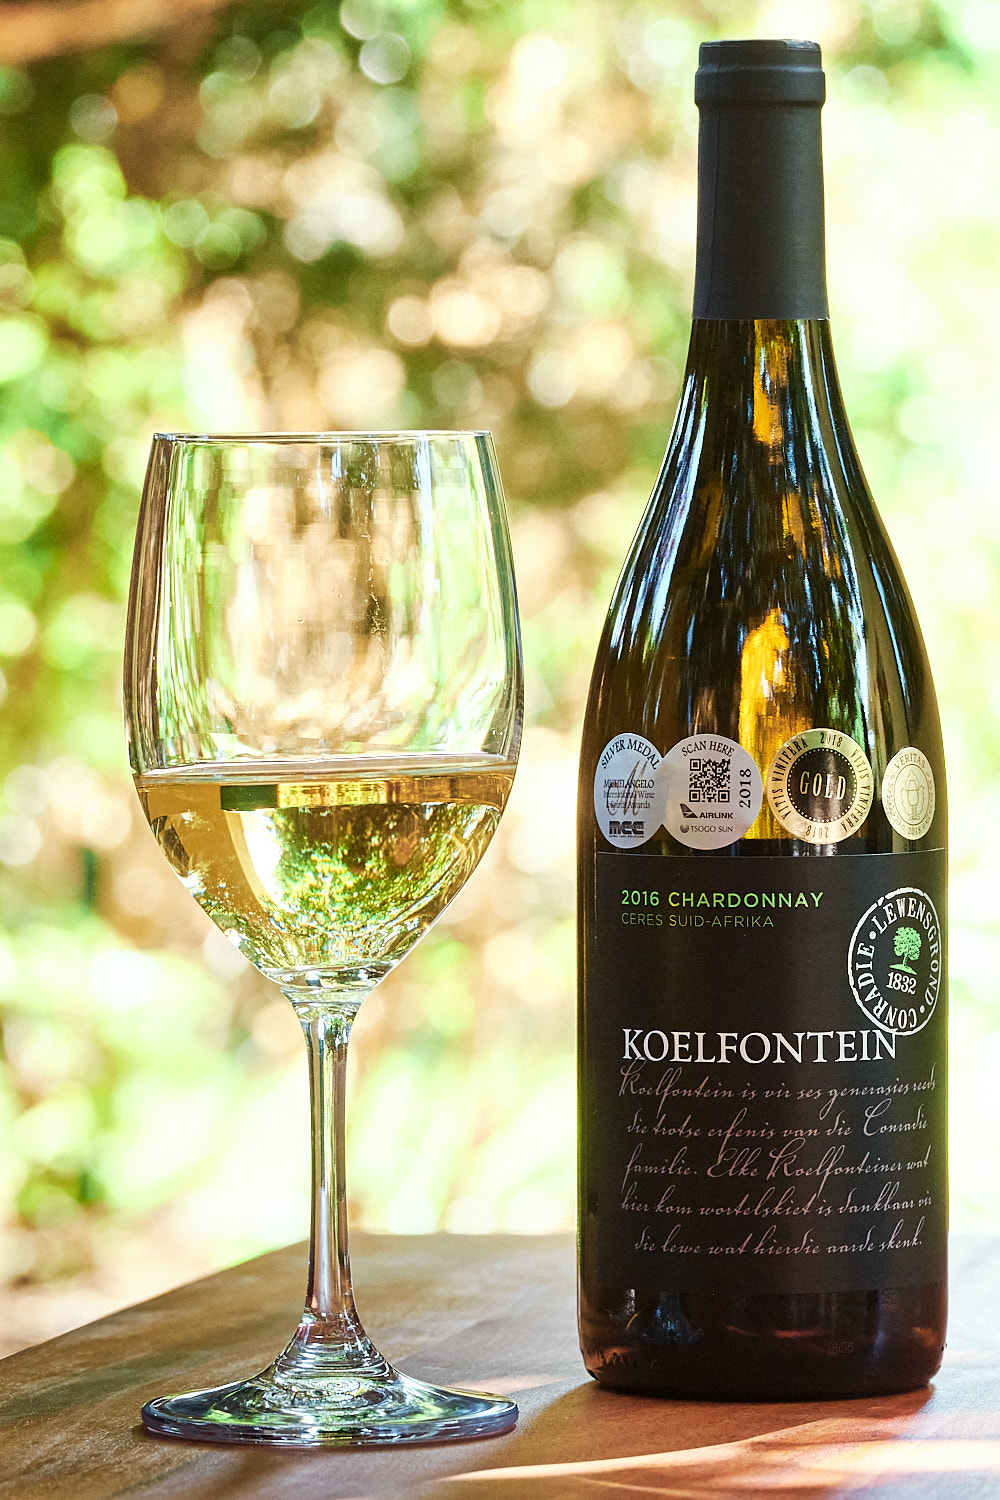 Example of a contextual product shot for Koelfontein Landgoed